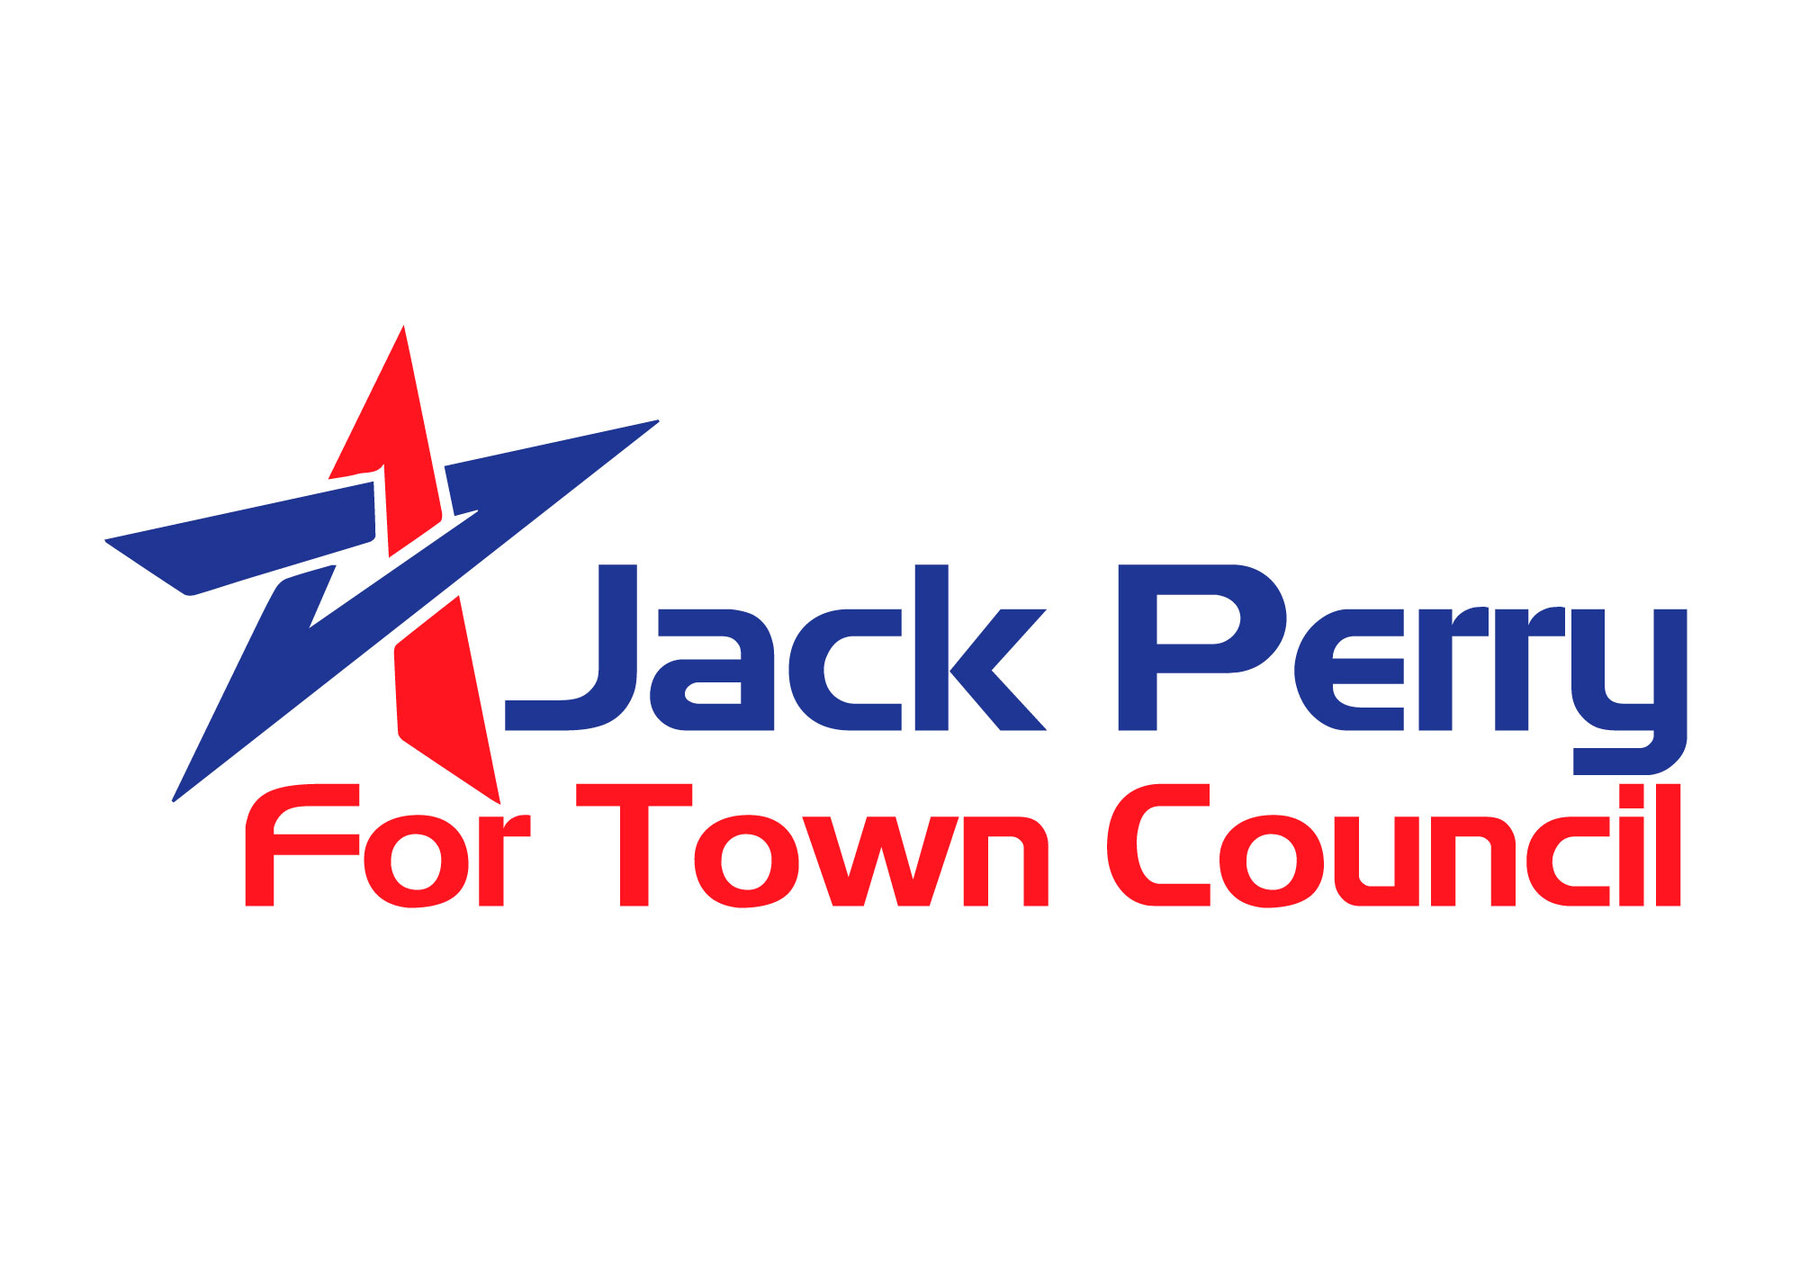 Jack Perry for Town Council: Jack Perry for Town Council